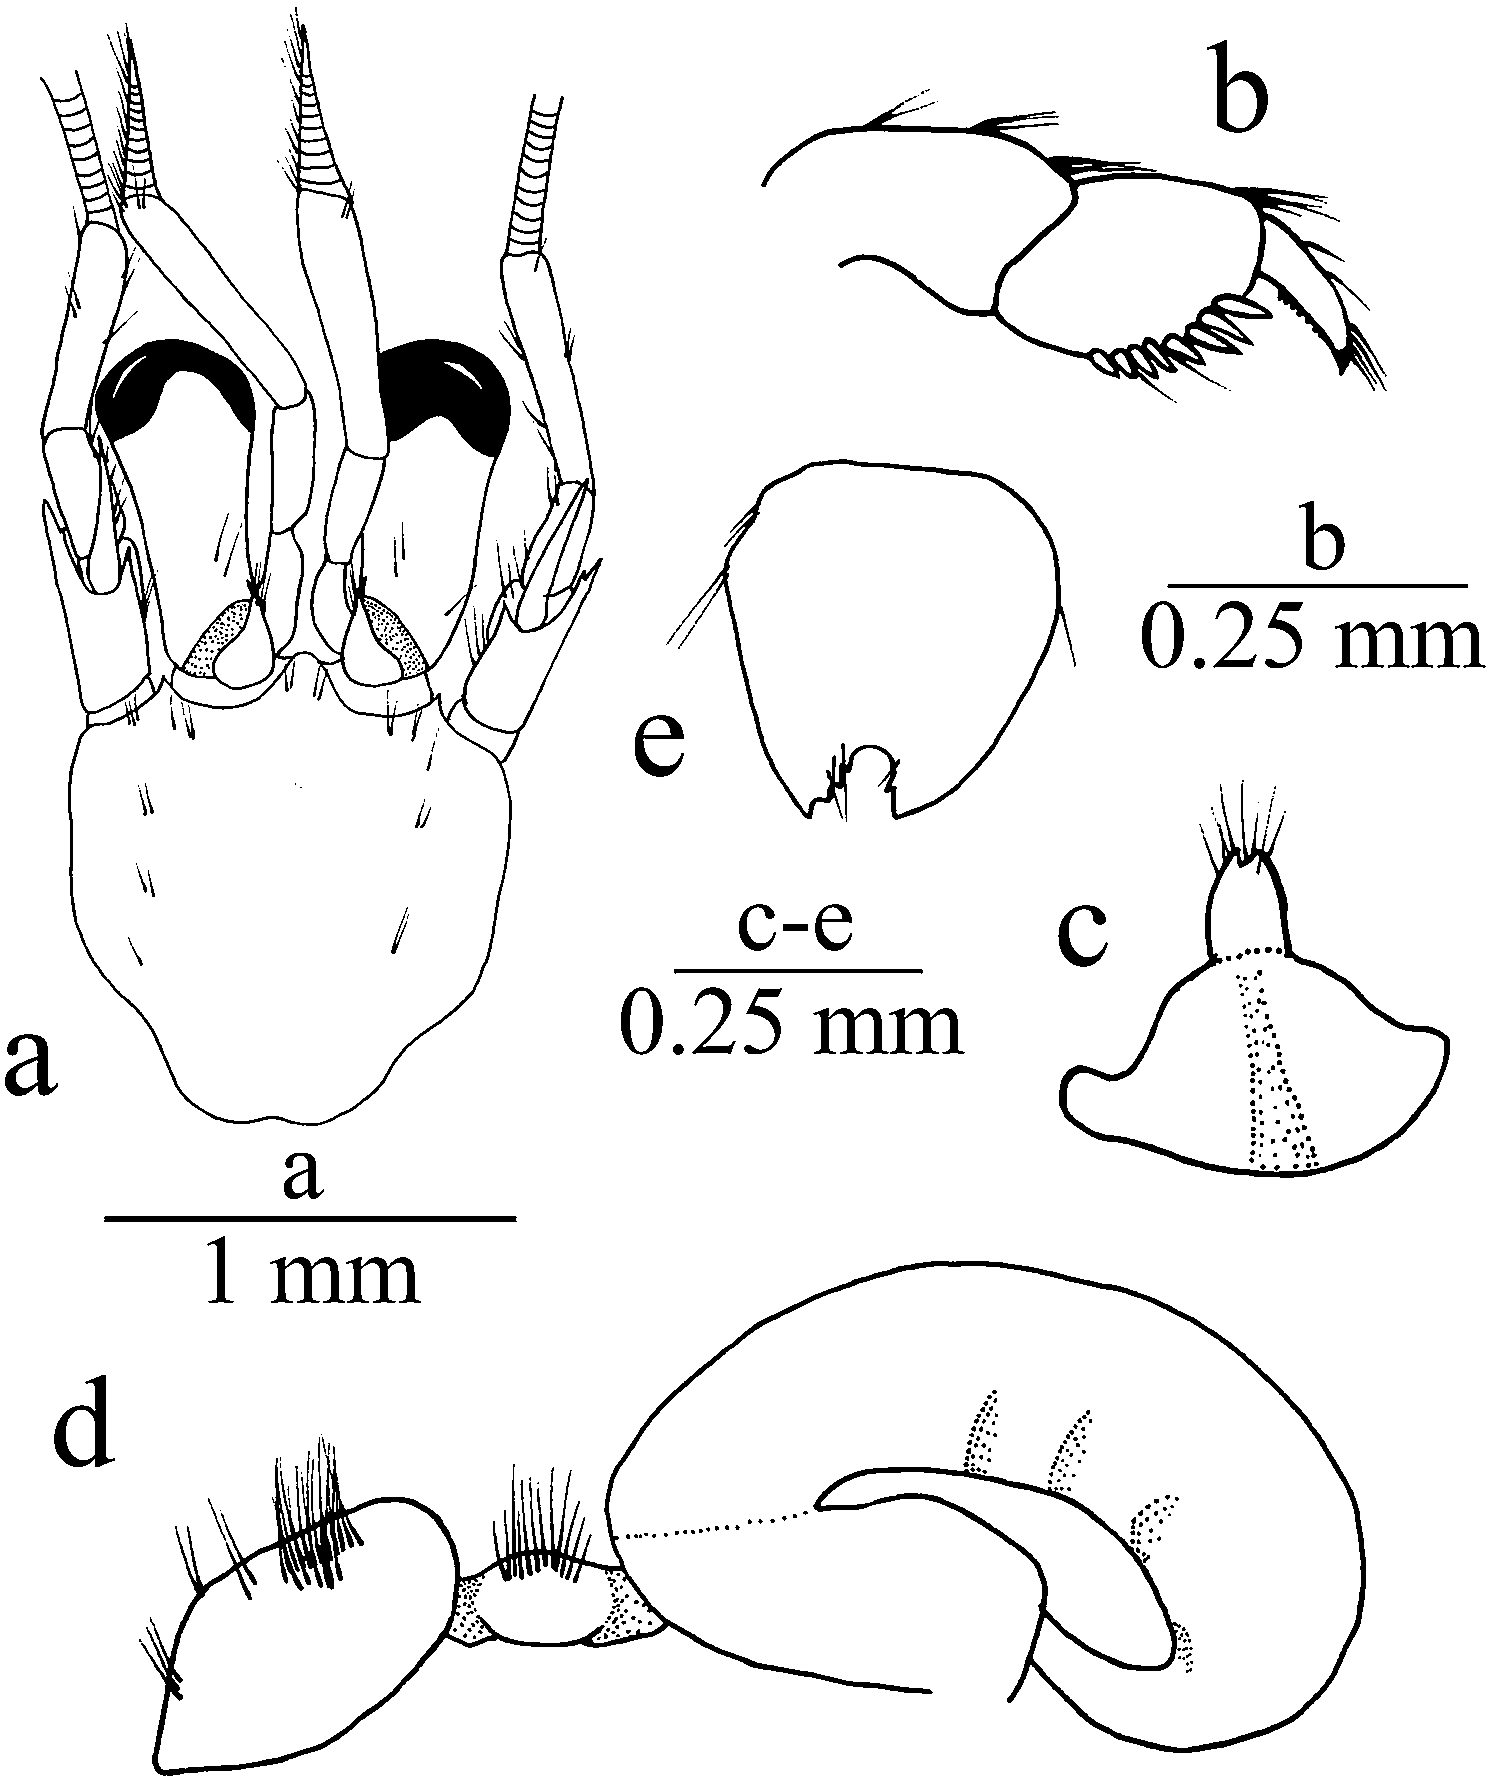 A new species of the hermit crab genus Turleania McLaughlin, 1997